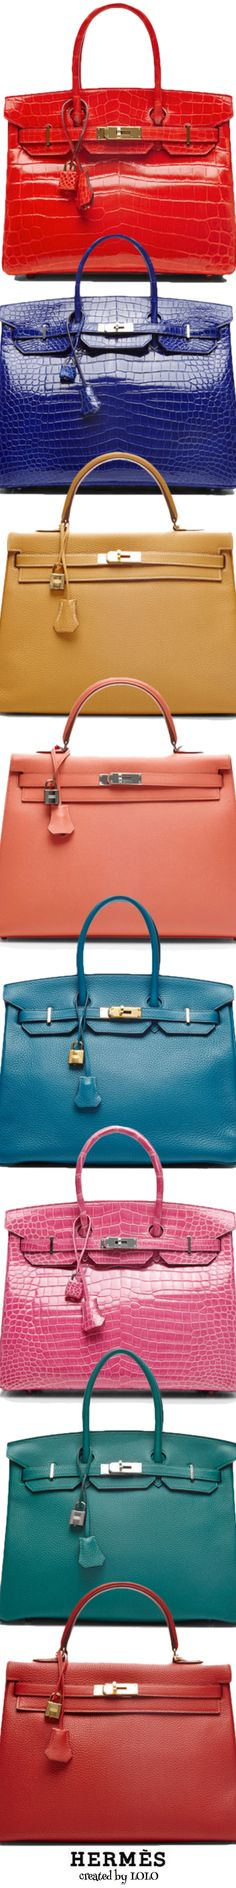 hermes collections on Pinterest | Hermes, Hermes Kelly and Hermes ...